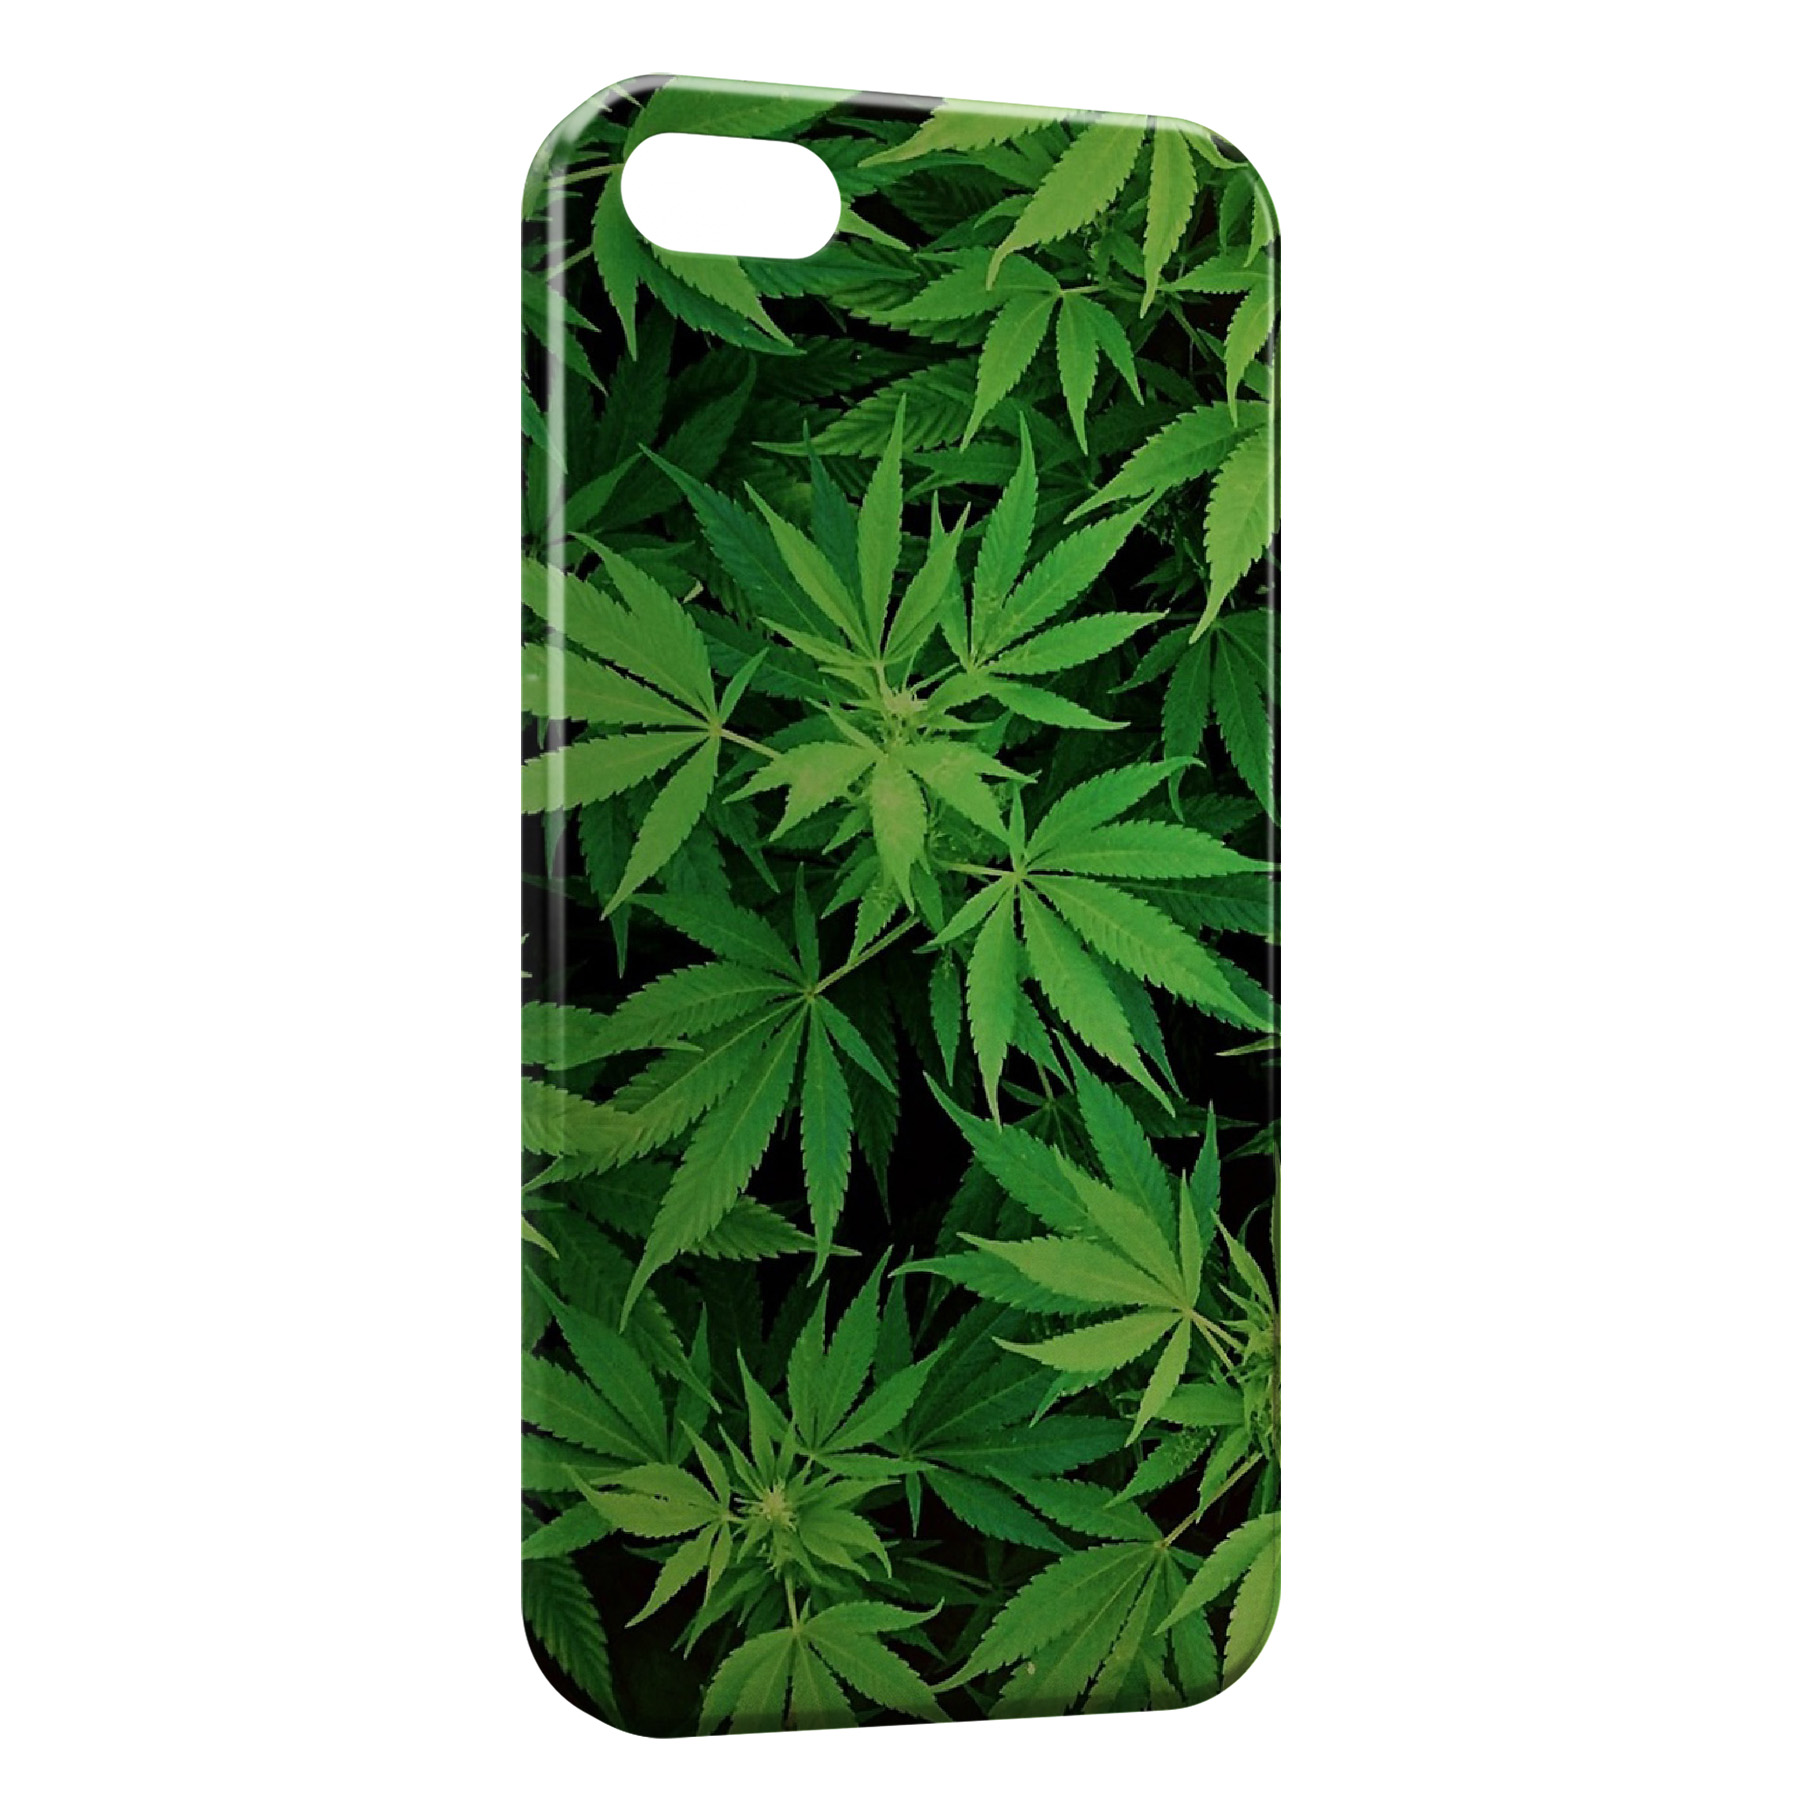 Coque iPhone 6 6S Cannabis Weed 3